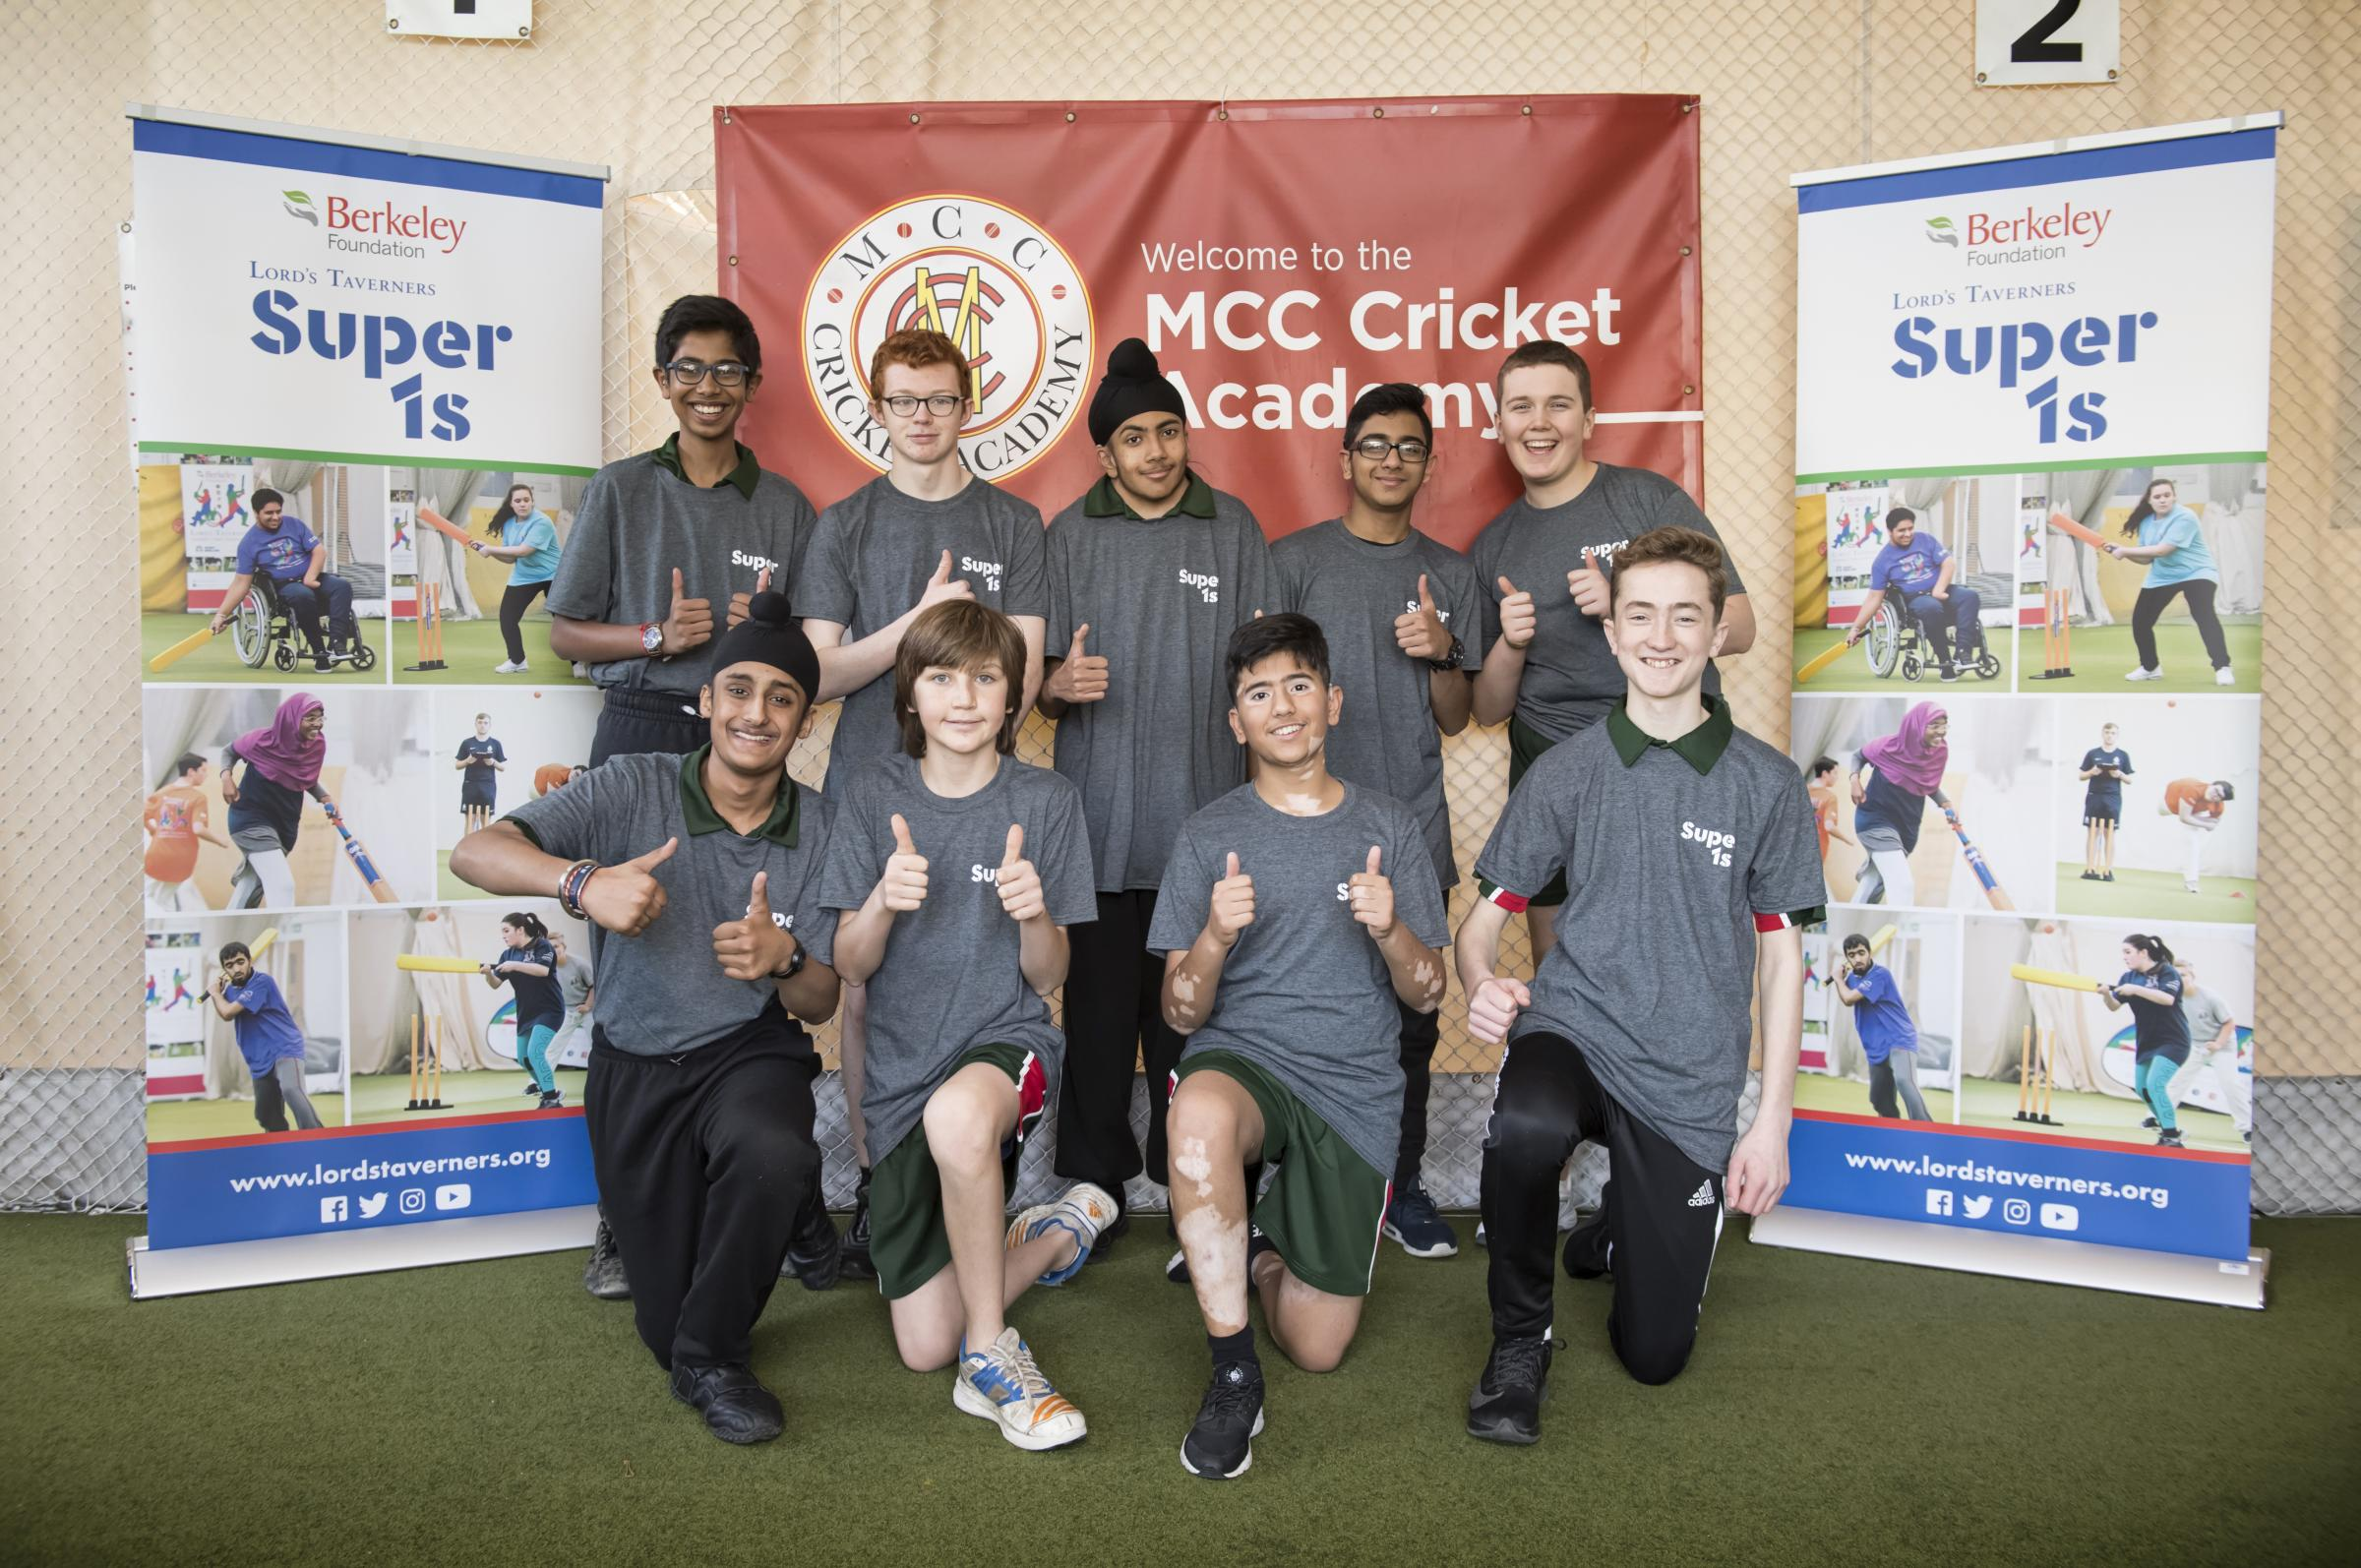 It was a big thumbs up for Hillingdon at Lord's